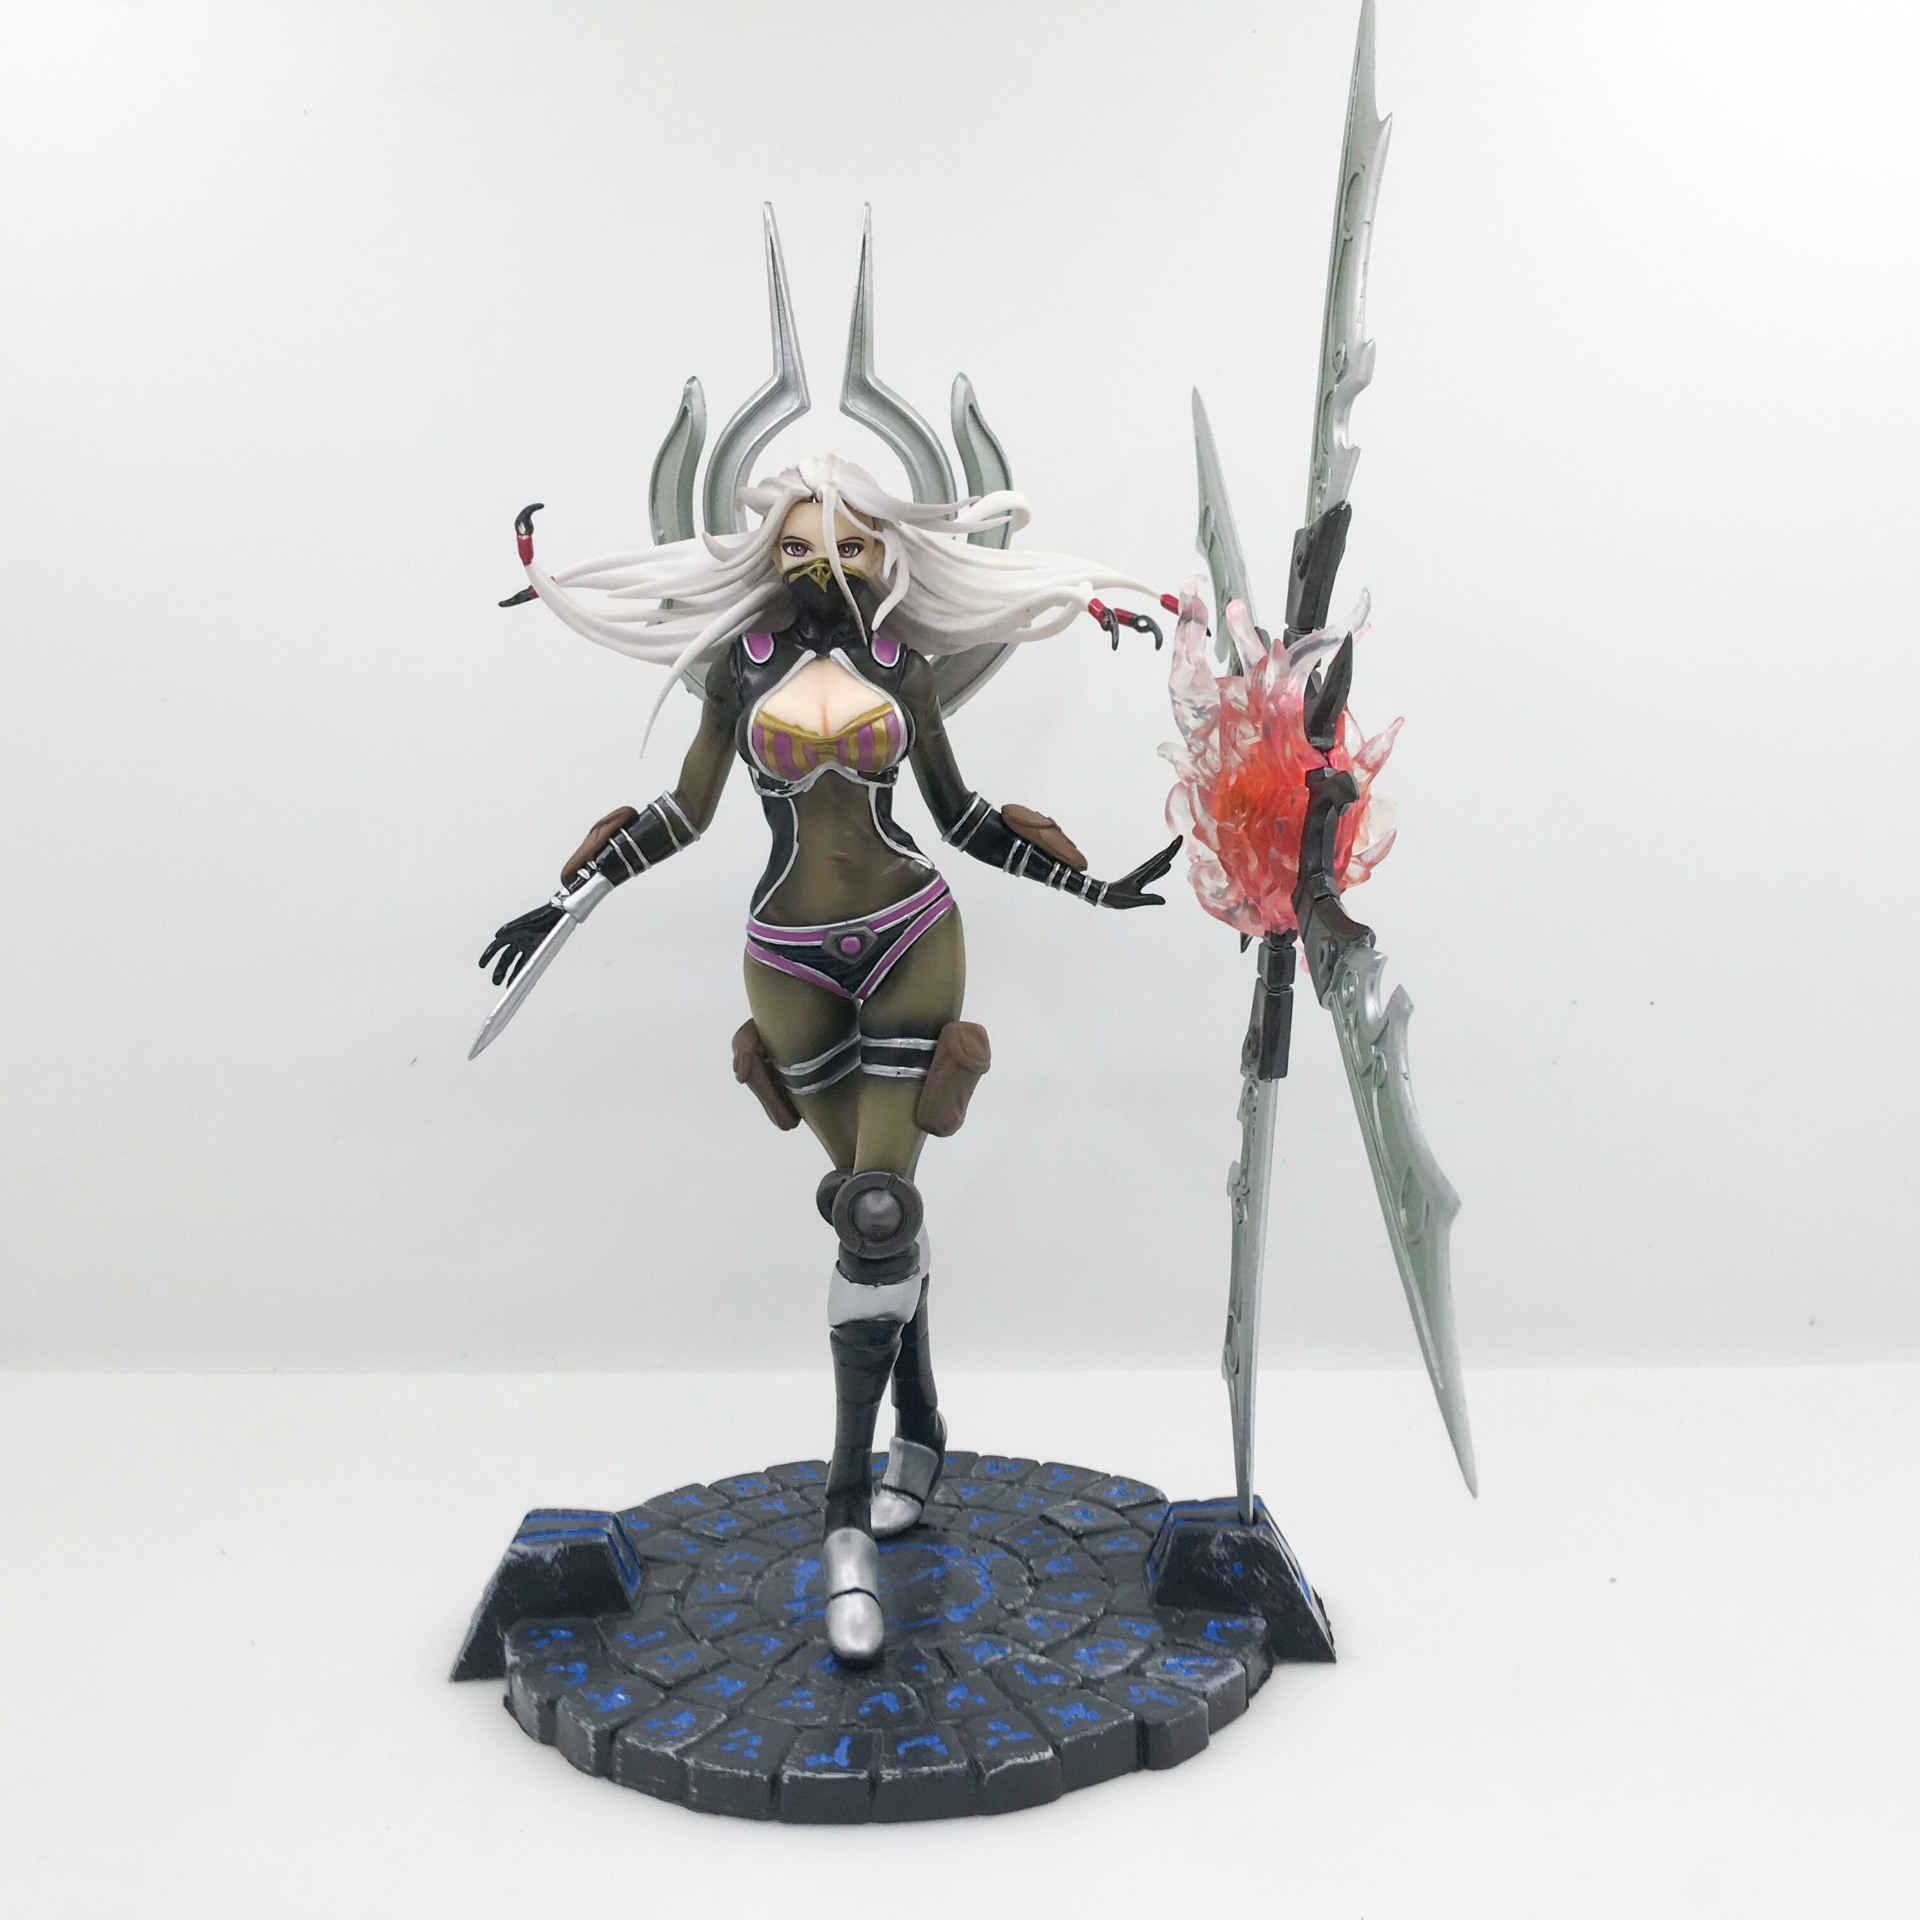 WVW 25CM Sports Game Dolls LOL Lrelia Yasuo Thresh Zed Jinx Play Arts Model PVC Toy Action Figure Decoration For Collection Gift<br>